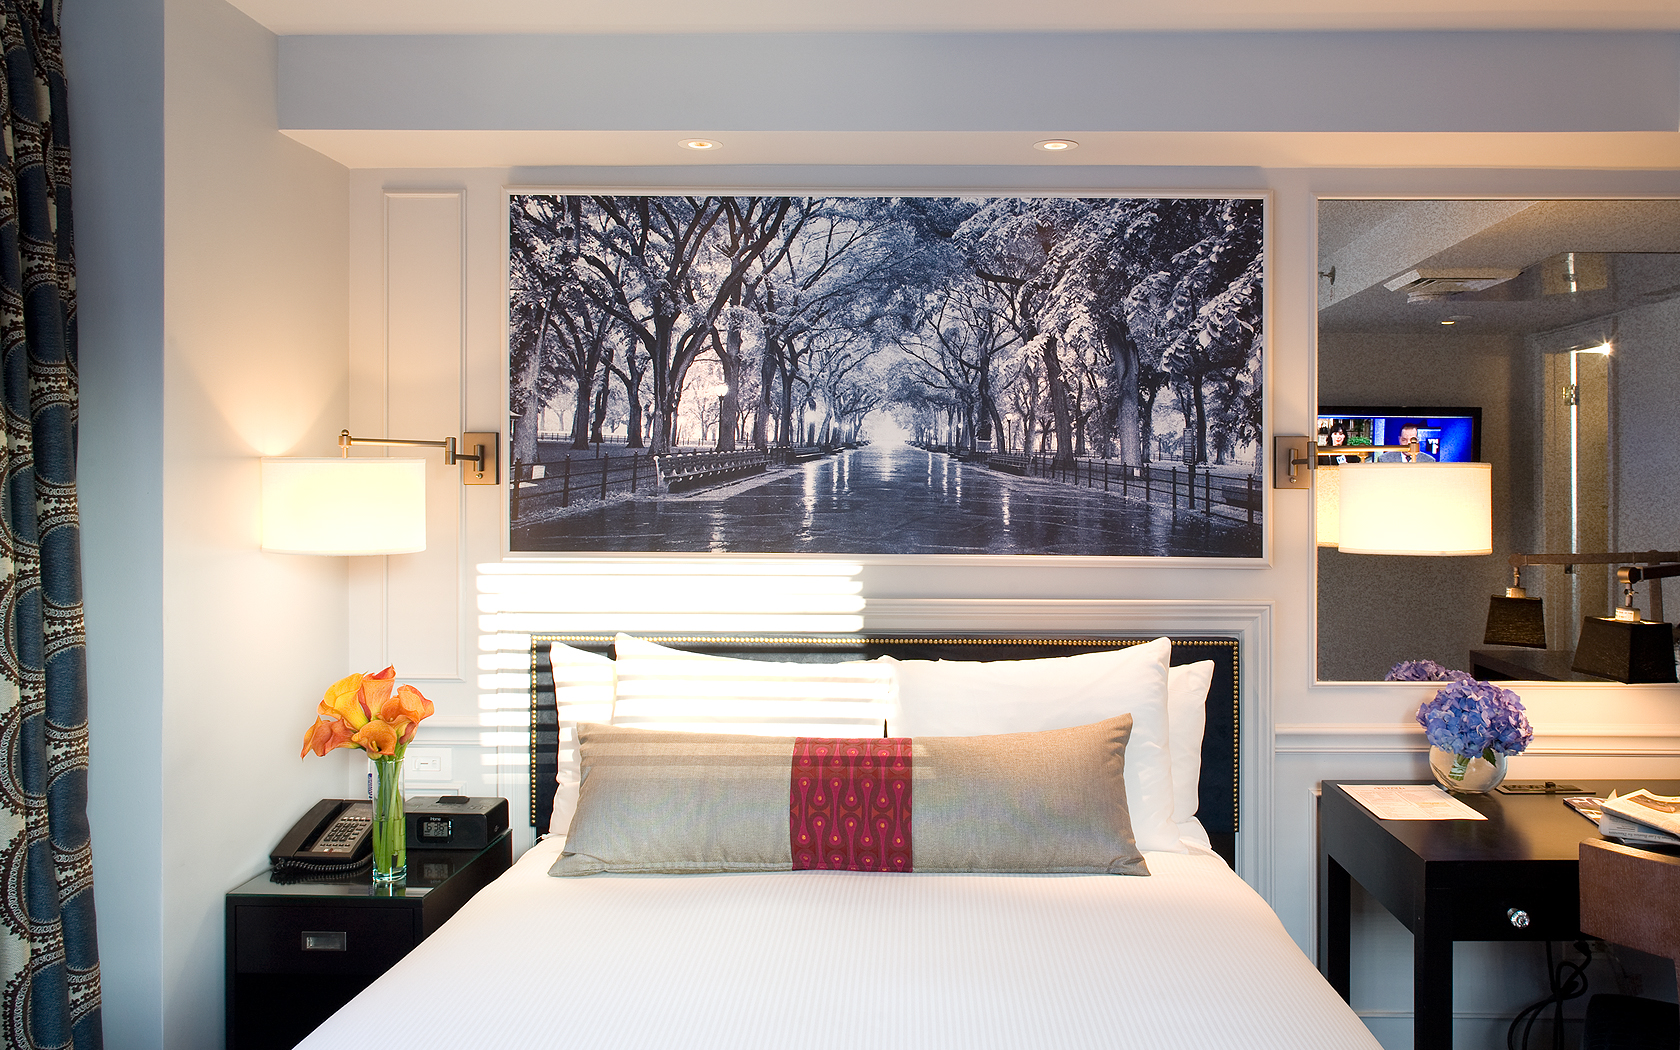 Deluxe King guestroom features one king bed with luxurious down bedding